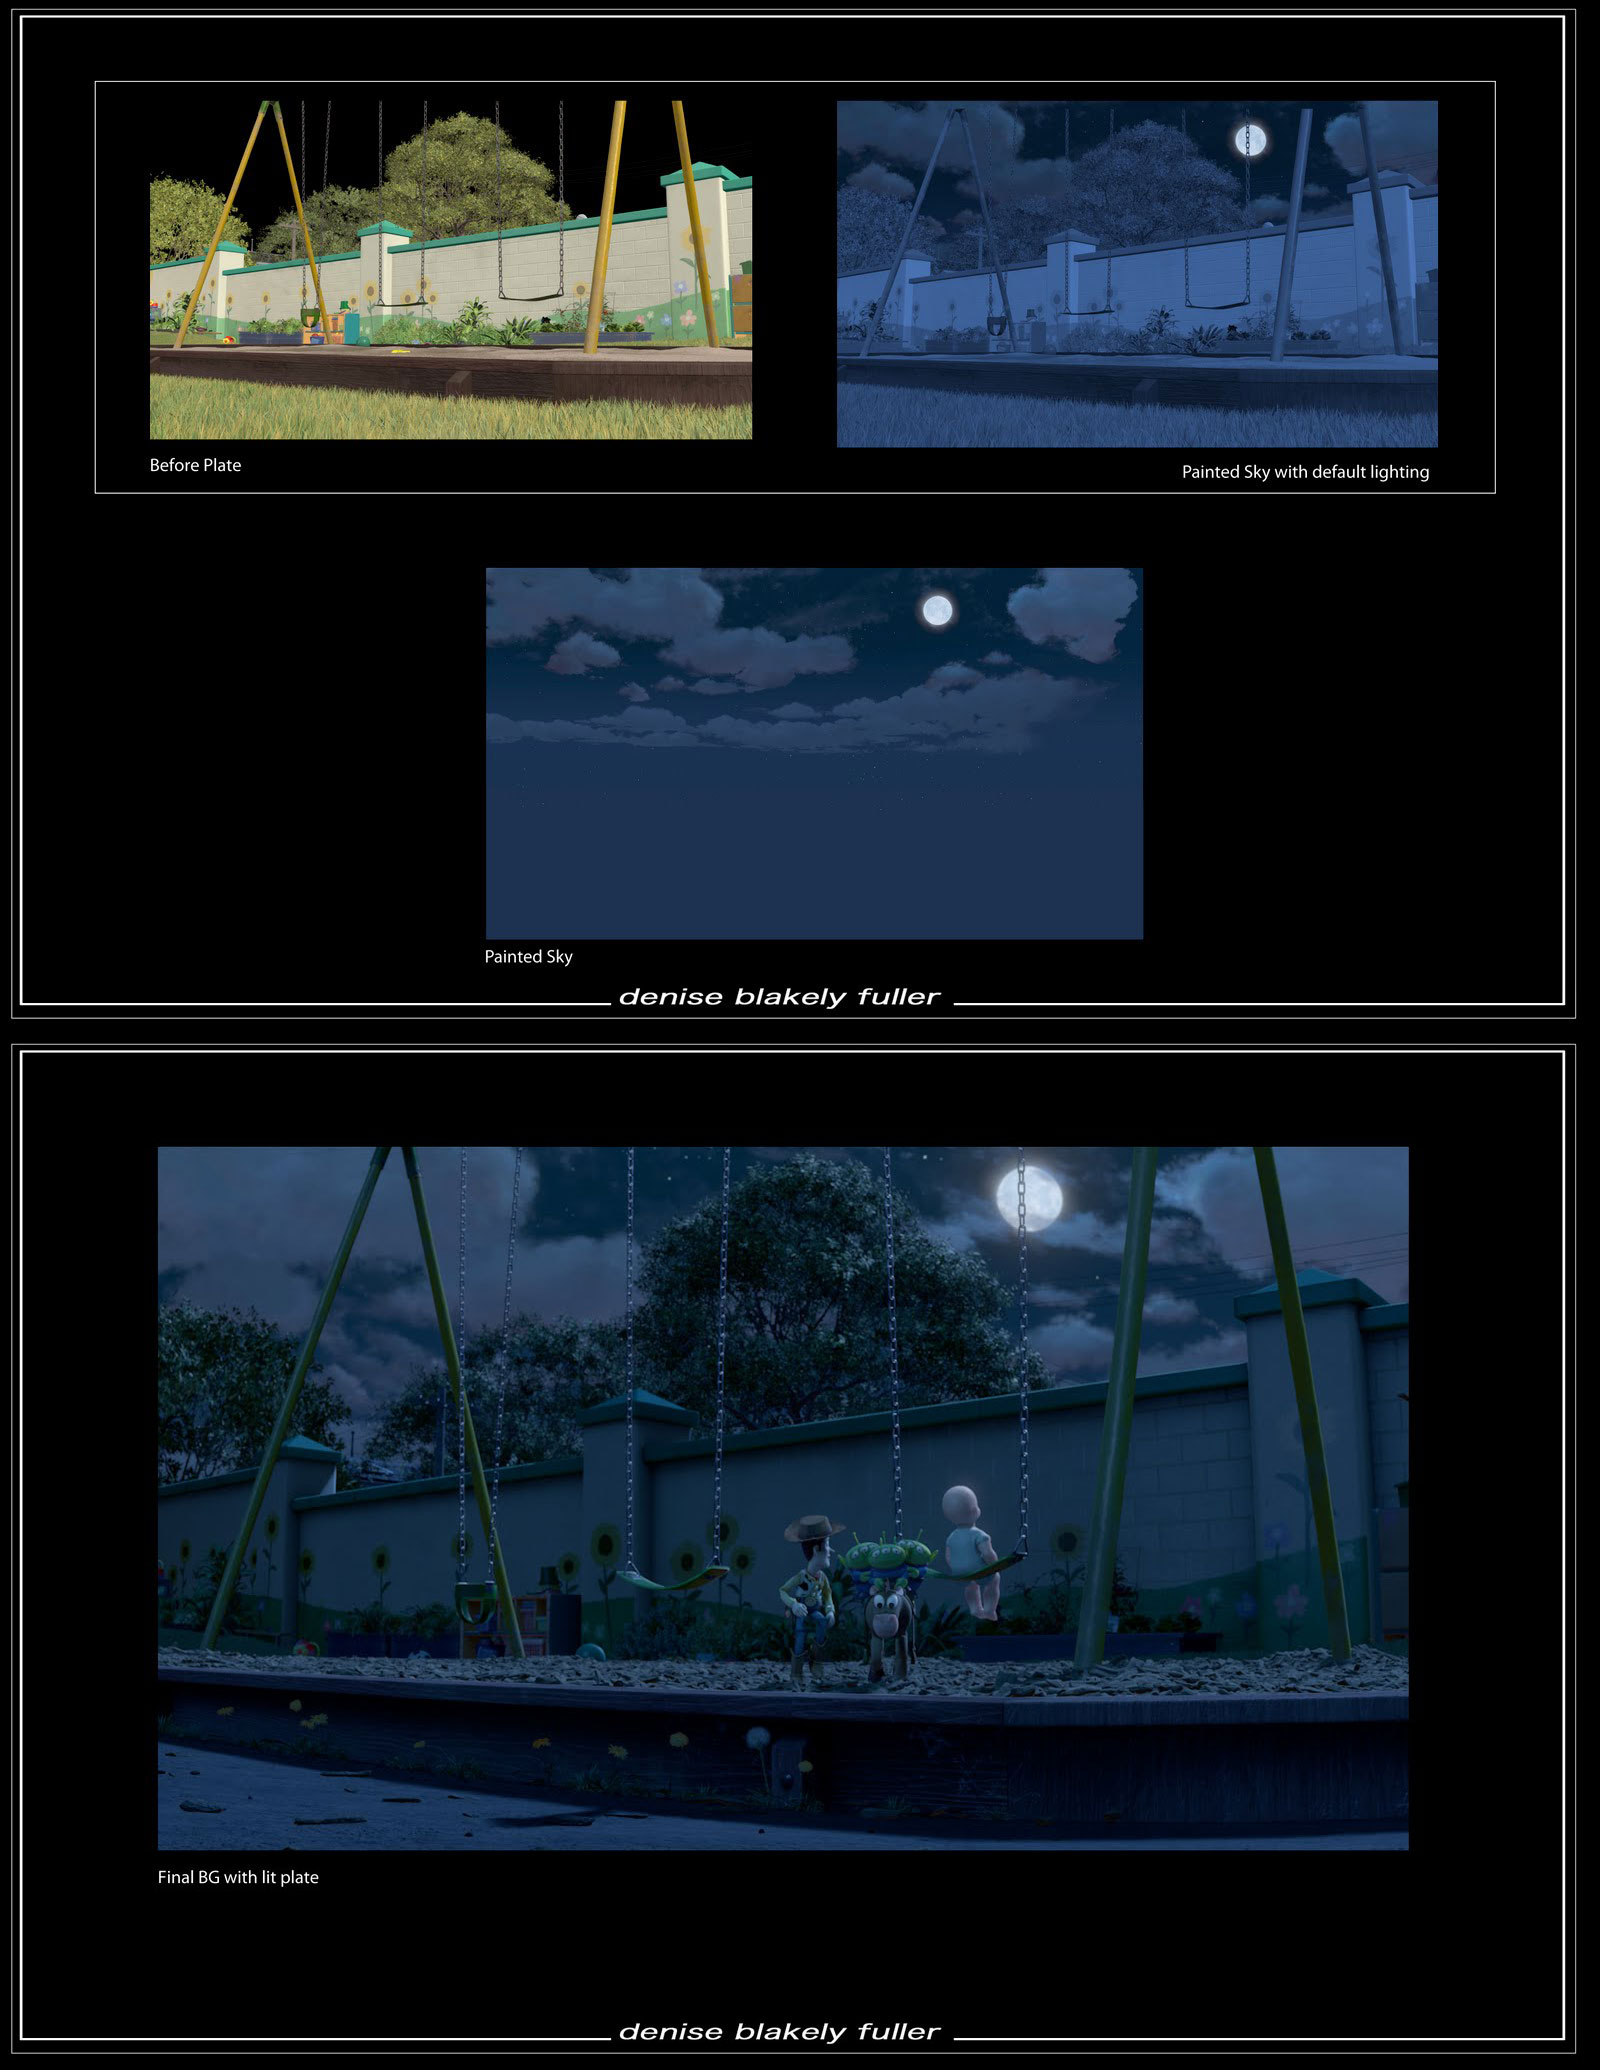 """Matte painting by Blakely Fuller for Disney/Pixar's """"Toy Story 3"""" (2010)."""